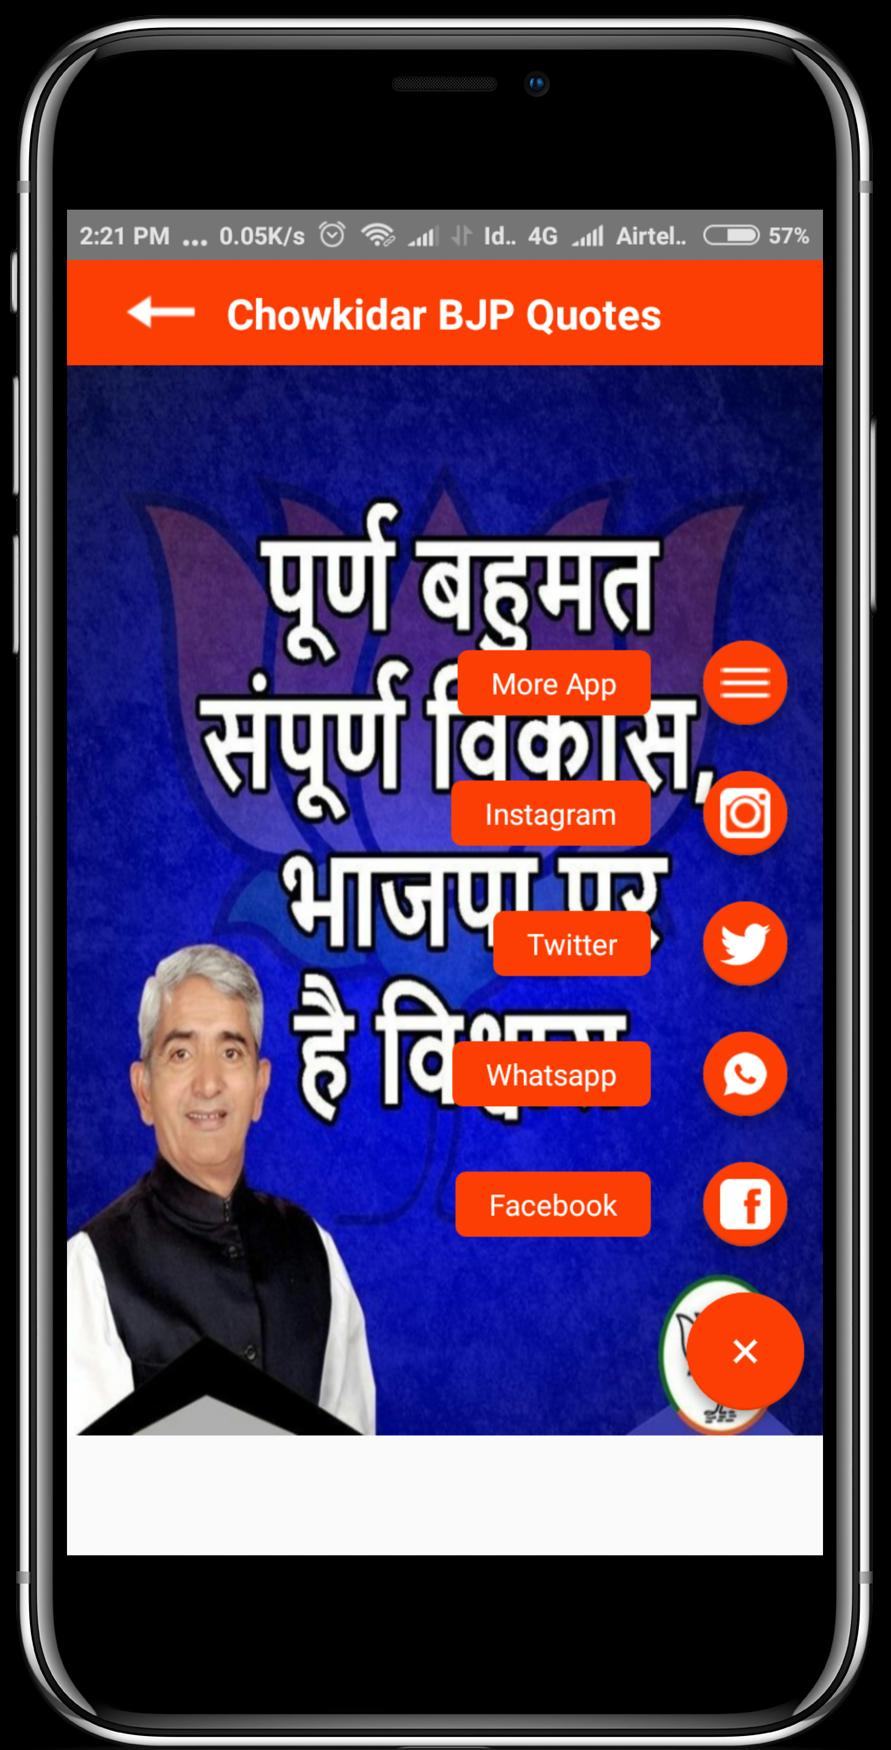 Chowkidar BJP Quotes for Android - APK Download